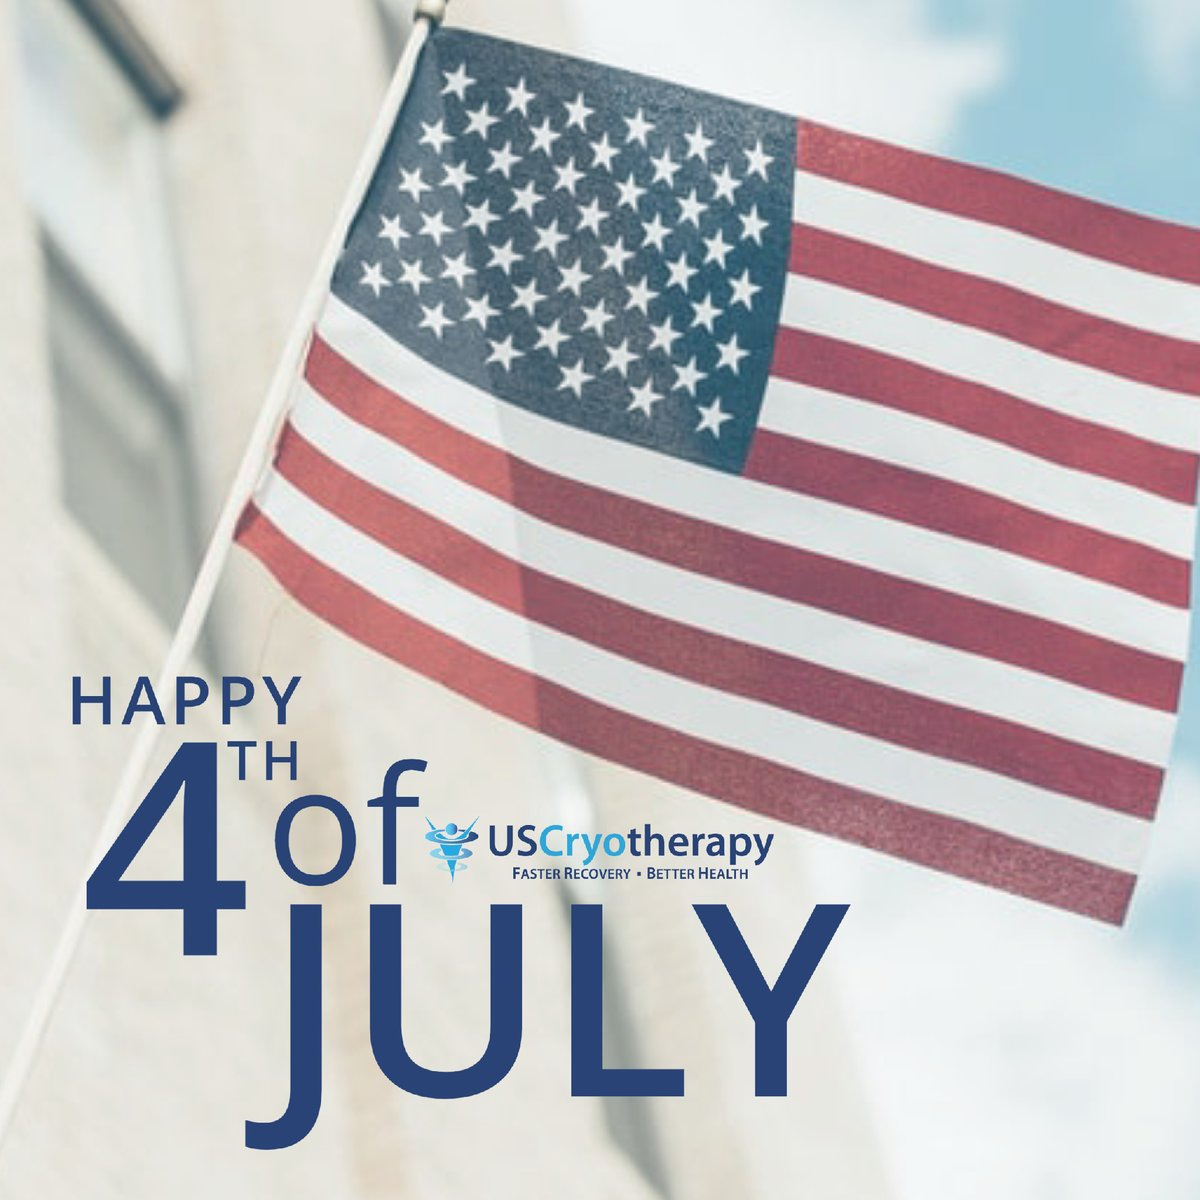 Happy 4th of July!  Don't forget to take advantage of our 4th of July sale online! #uscryotherapy #cryotherapy #ftbliss #fortblisstexas #ftblisstx #elpaso #elpasotexas #elpasotx #eptx #itsallgoodep #livefitep #elpasostrong #wellness #health #recovery #4thofjulypic.twitter.com/RtvVzwuQkD